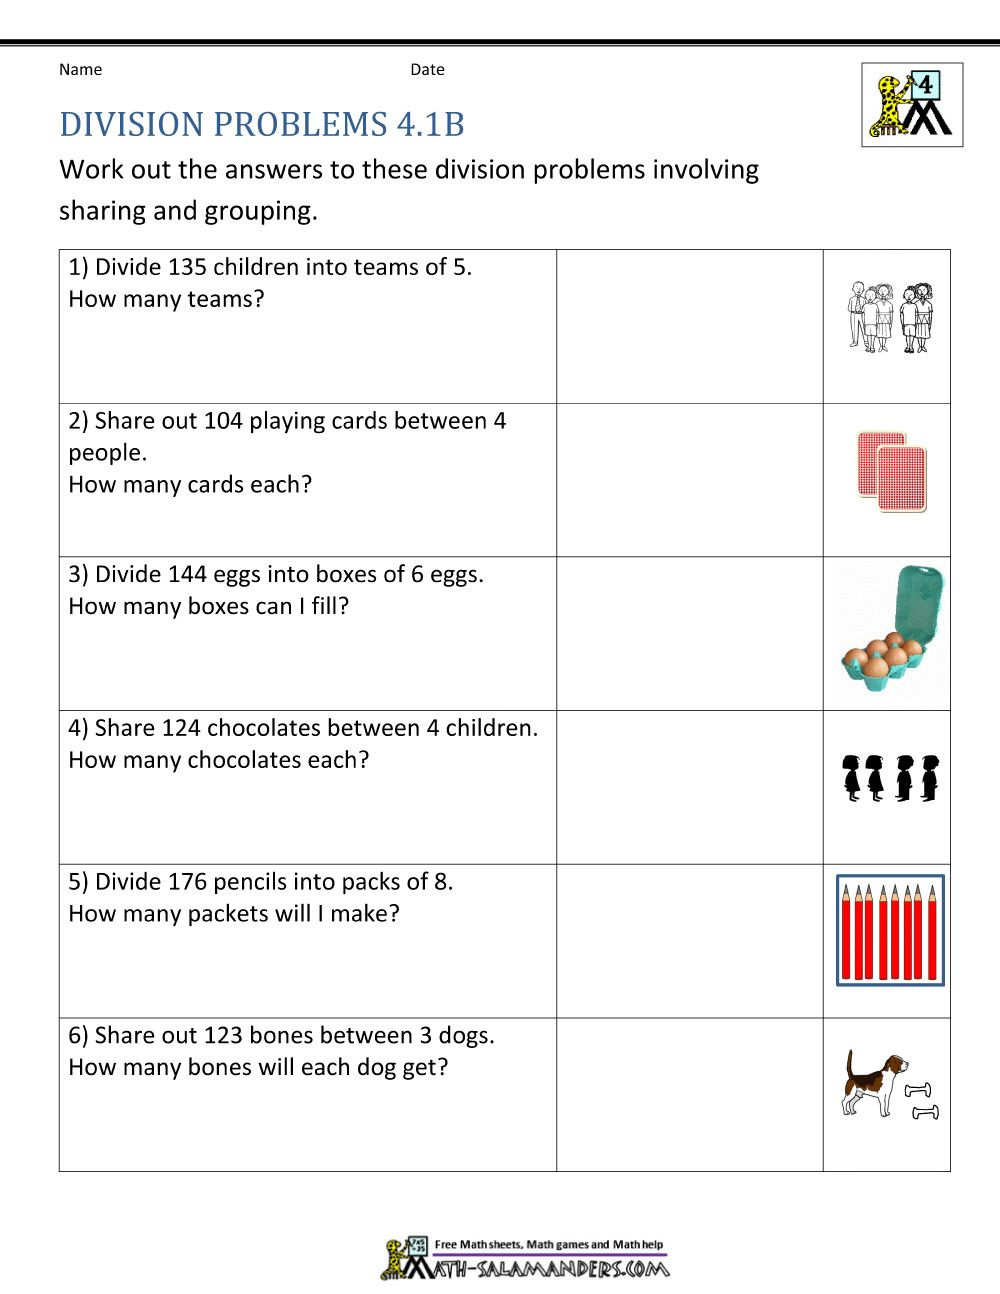 3 Division Questions For Grade 4 Worksheet Ideas 4th Grade Division Problems Maths Division Worksheets Grade 4 Division Worksheets Free Math Worksheets